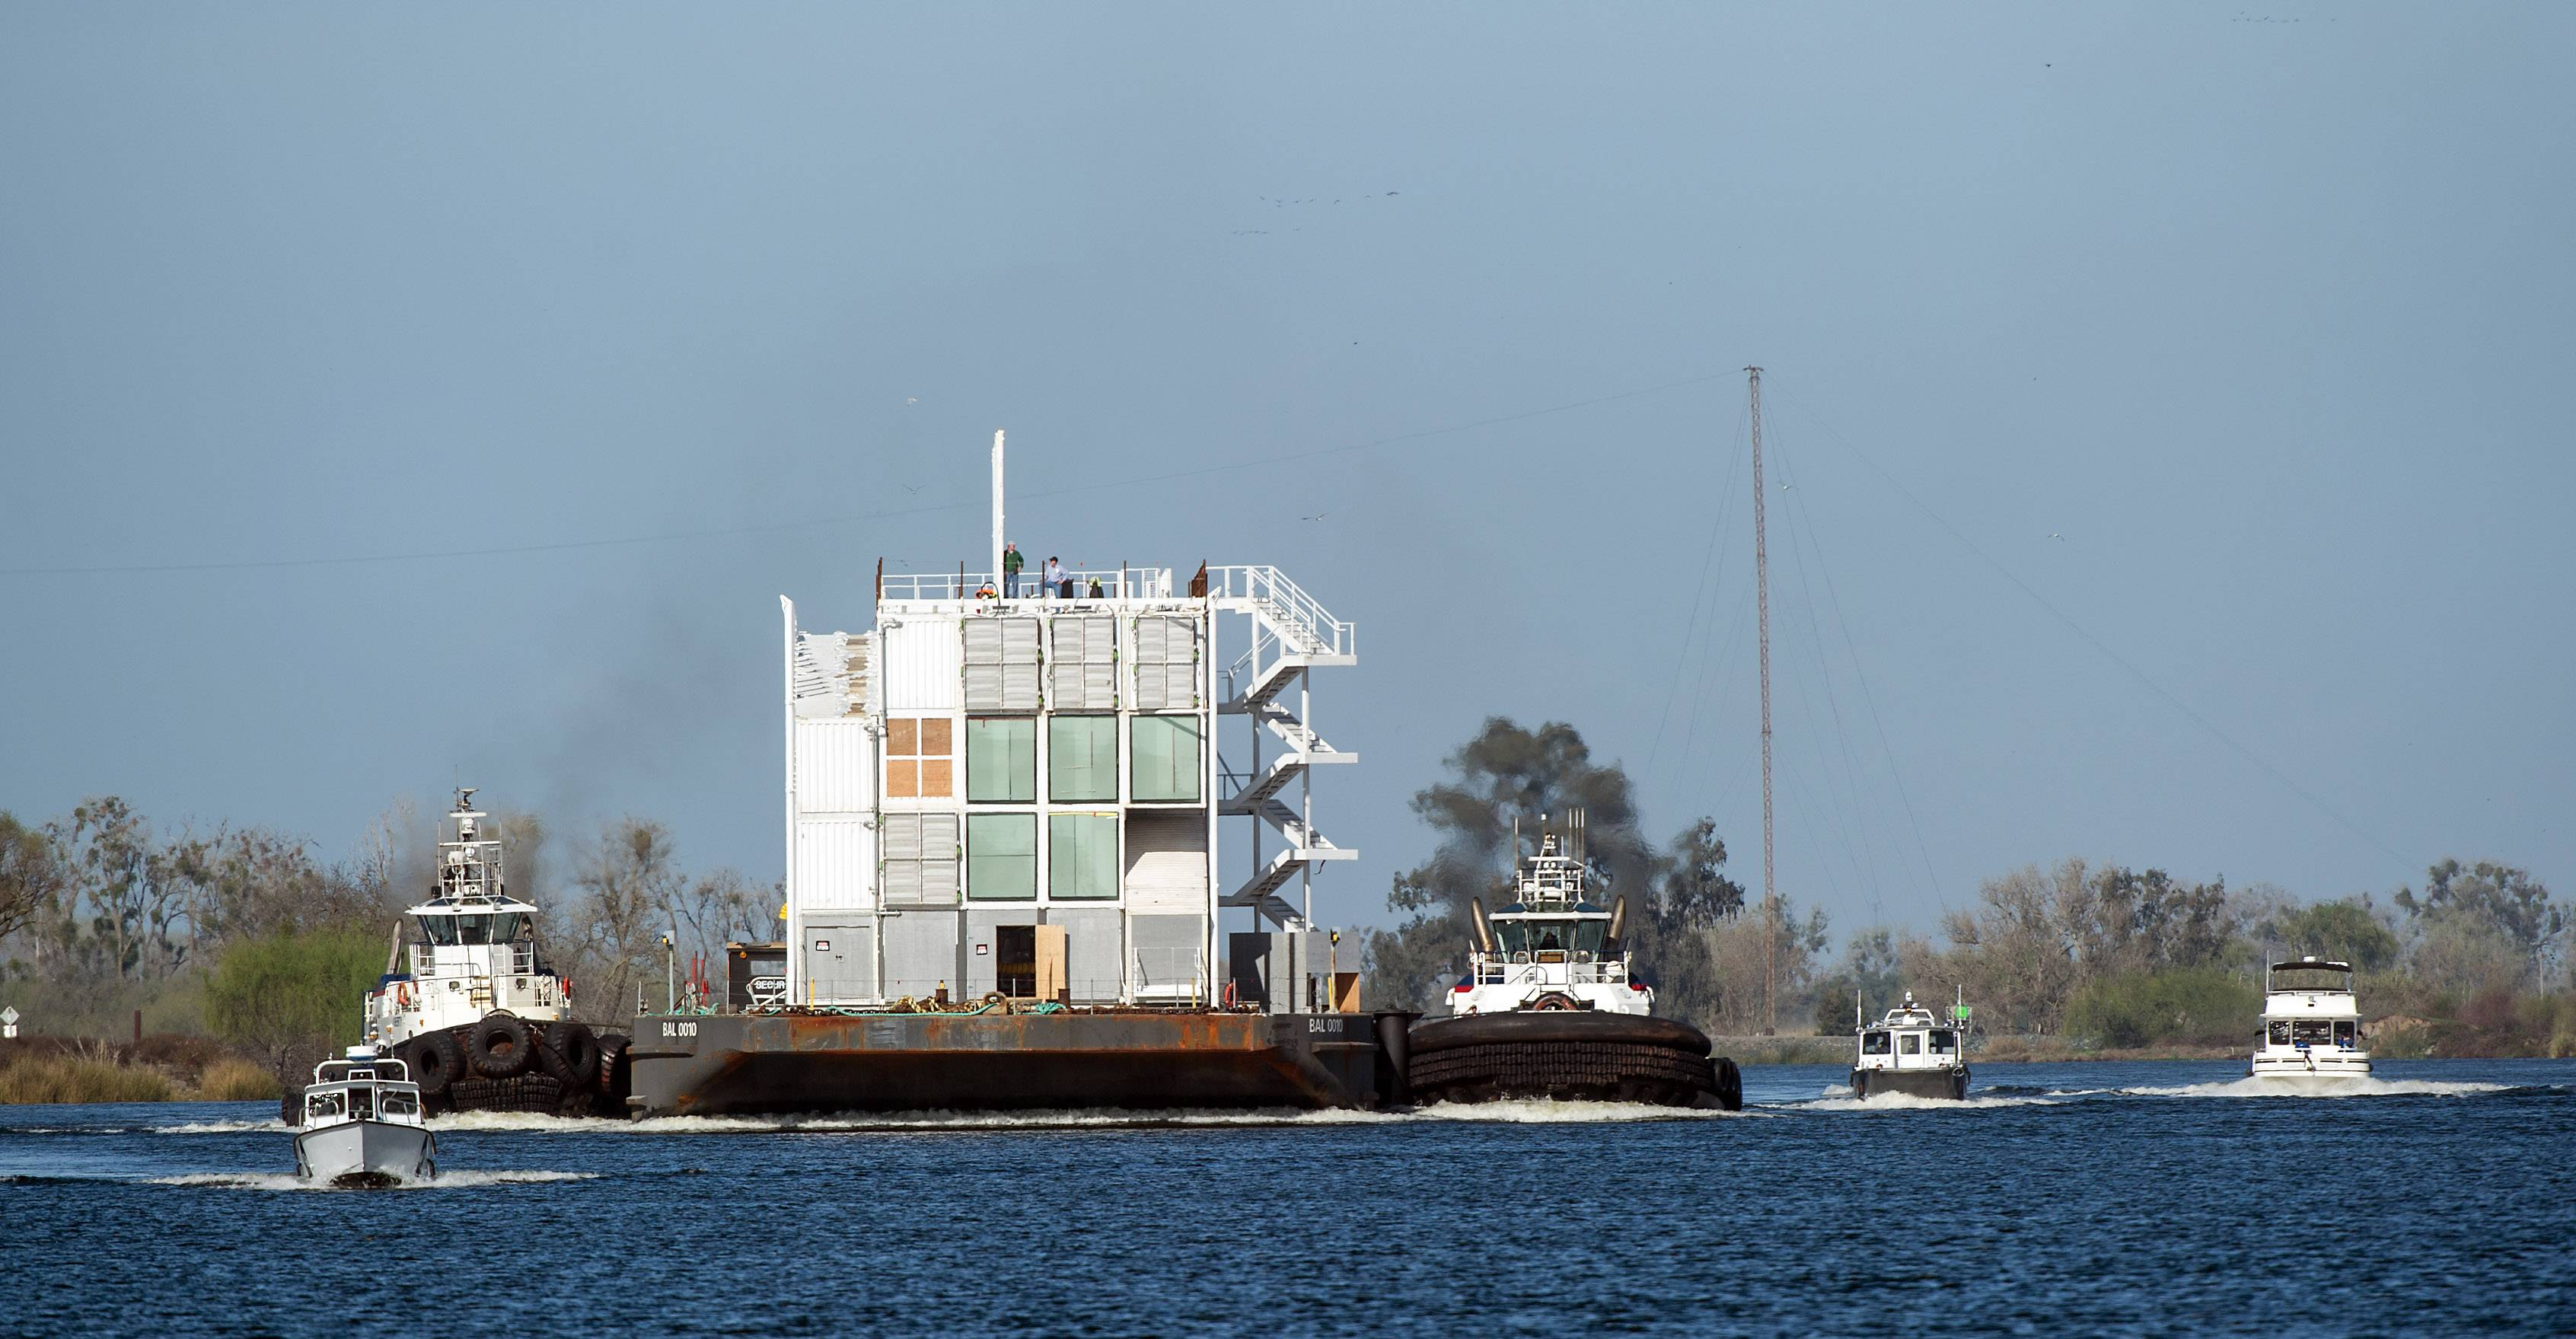 The Google barge is seen in a channel west of the Port of Stockton Thursday, March 6, 2014, in Stockton, Calif. Google's mystery barge has arrived at its new home in the California delta after the Internet company was ordered to move it from San Francisco.